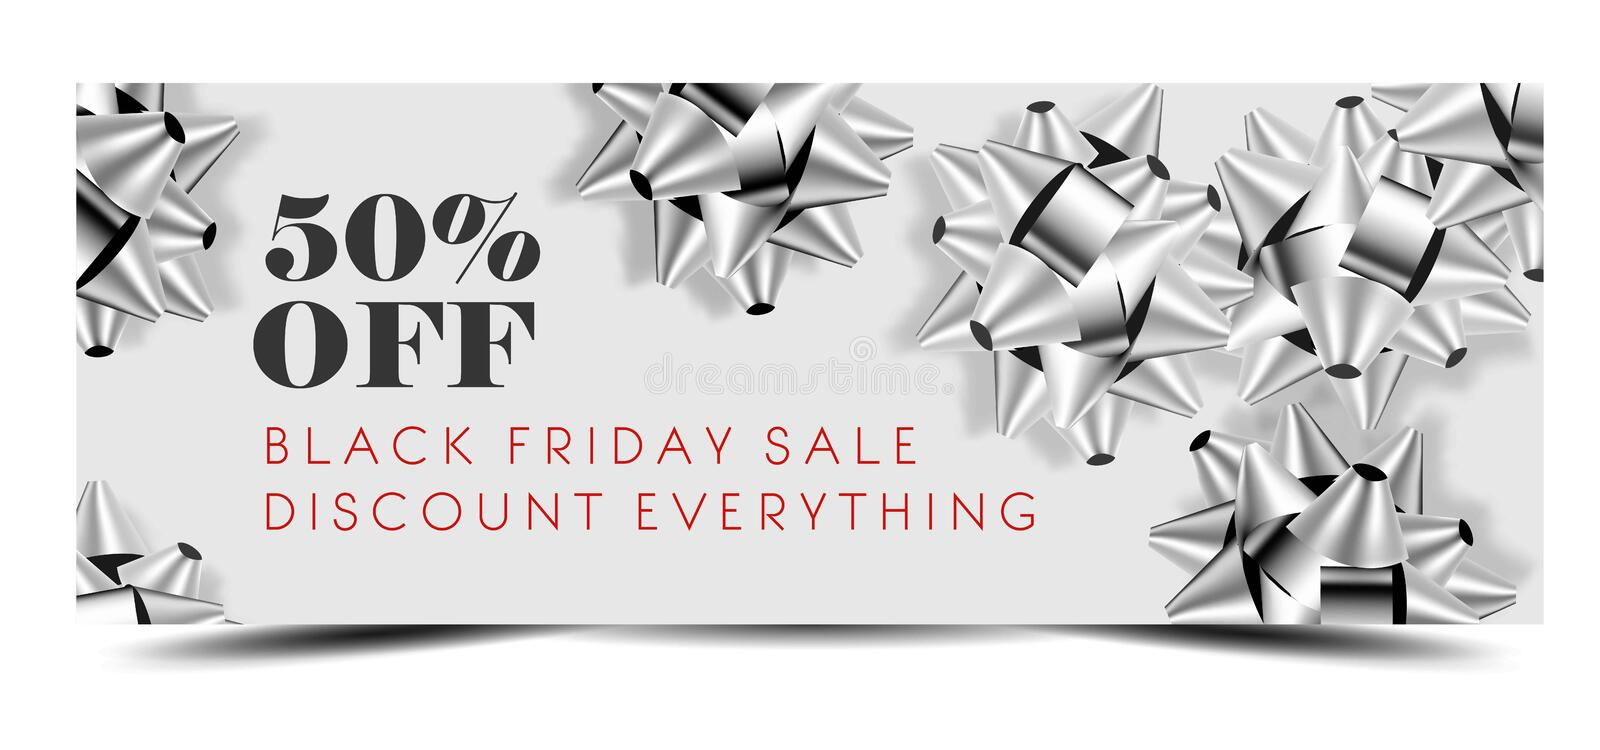 Black Friday sale discount promo offer banner or shop 50 percent price off advertising flyer and coupon. Vector design of silver gift bows on sparkling glitter vector illustration